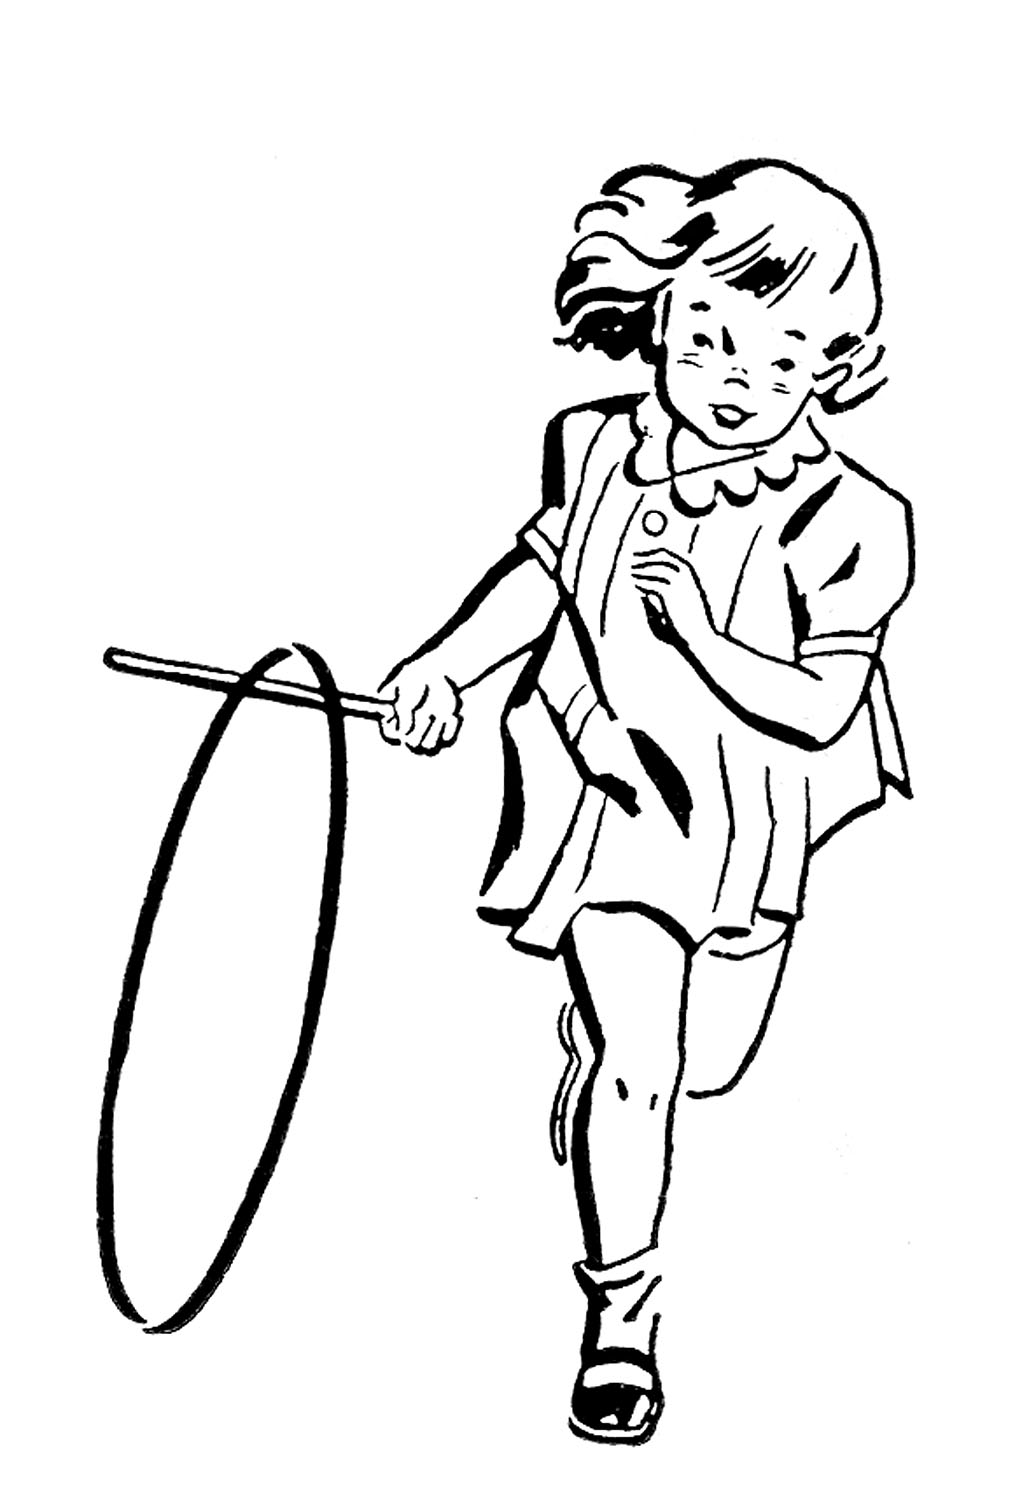 israeli clothing coloring pages - photo#17